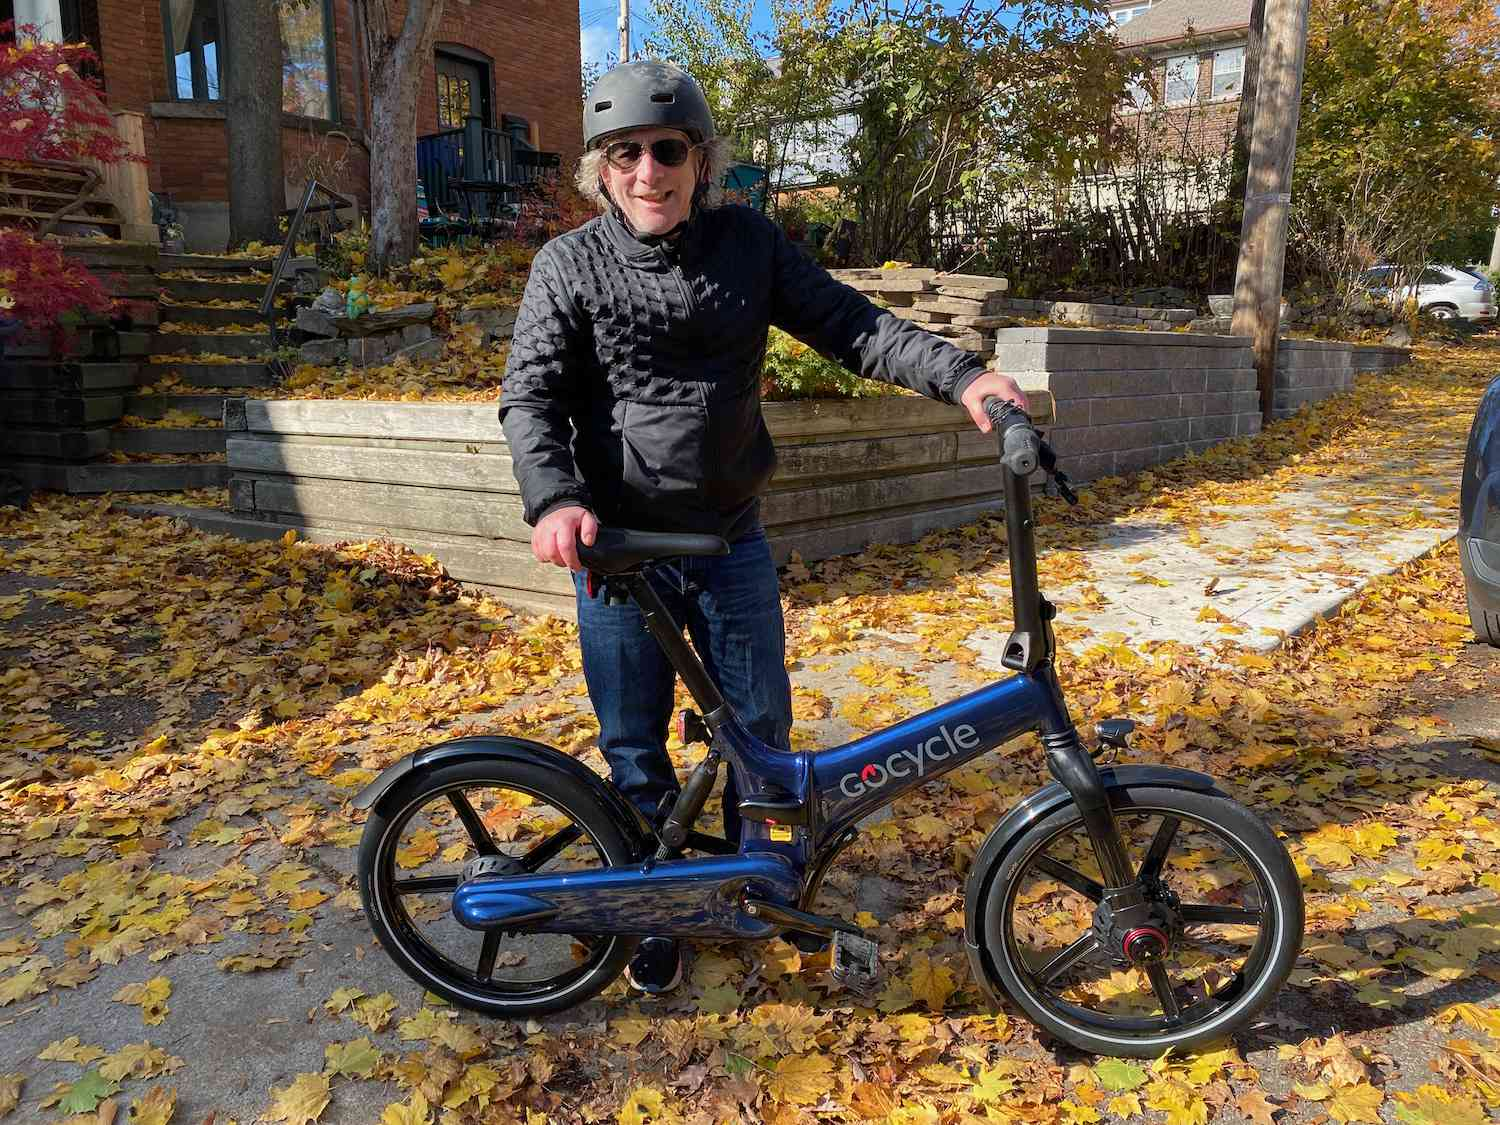 Lloyd Alter with a Gocycle